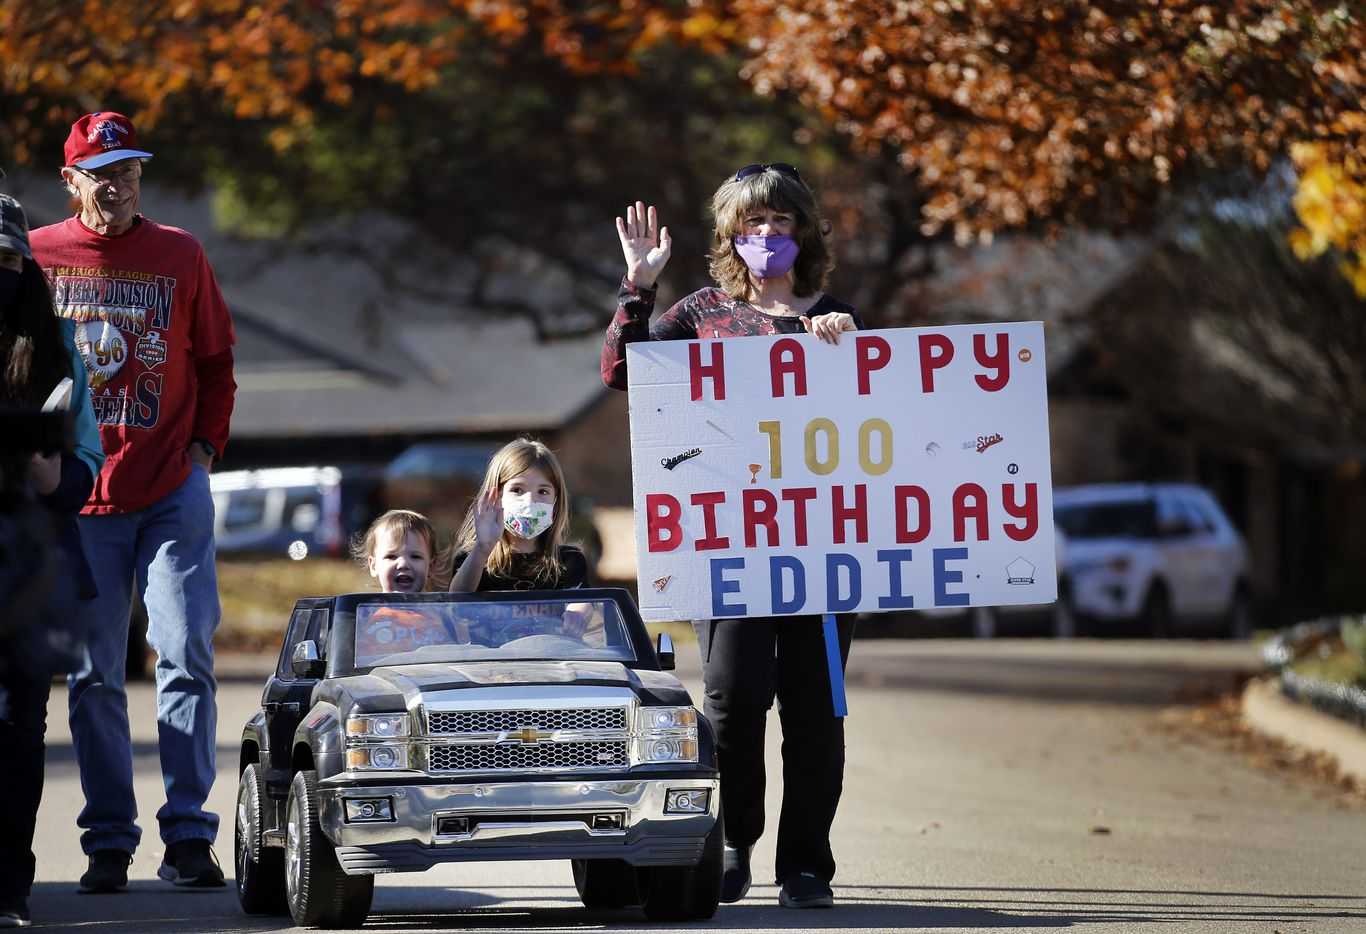 Clayton and Aubrey Myles along with their grandmother Pam Lay (right) drive to Eddie Robinson's early, drvie-thru 100th birthday event.  The oldest living former MLB player will turn 100 on December 15th. To share his birthday with friends, his family orchestrated a drive-by celebration outside his Fort Worth home, Saturday, December 12, 2020. His 65 year career started by playing for the Cleveland Indians and serving in World War II. Later he went on to play for several other teams before presiding over three winning seasons as the Texas Rangers general manager. He is still in great physical health as he waves to passersby, including former teammates, GM Tom Grieve and U.S. congressman and neighbor Marc Veasey. (Tom Fox/The Dallas Morning News)